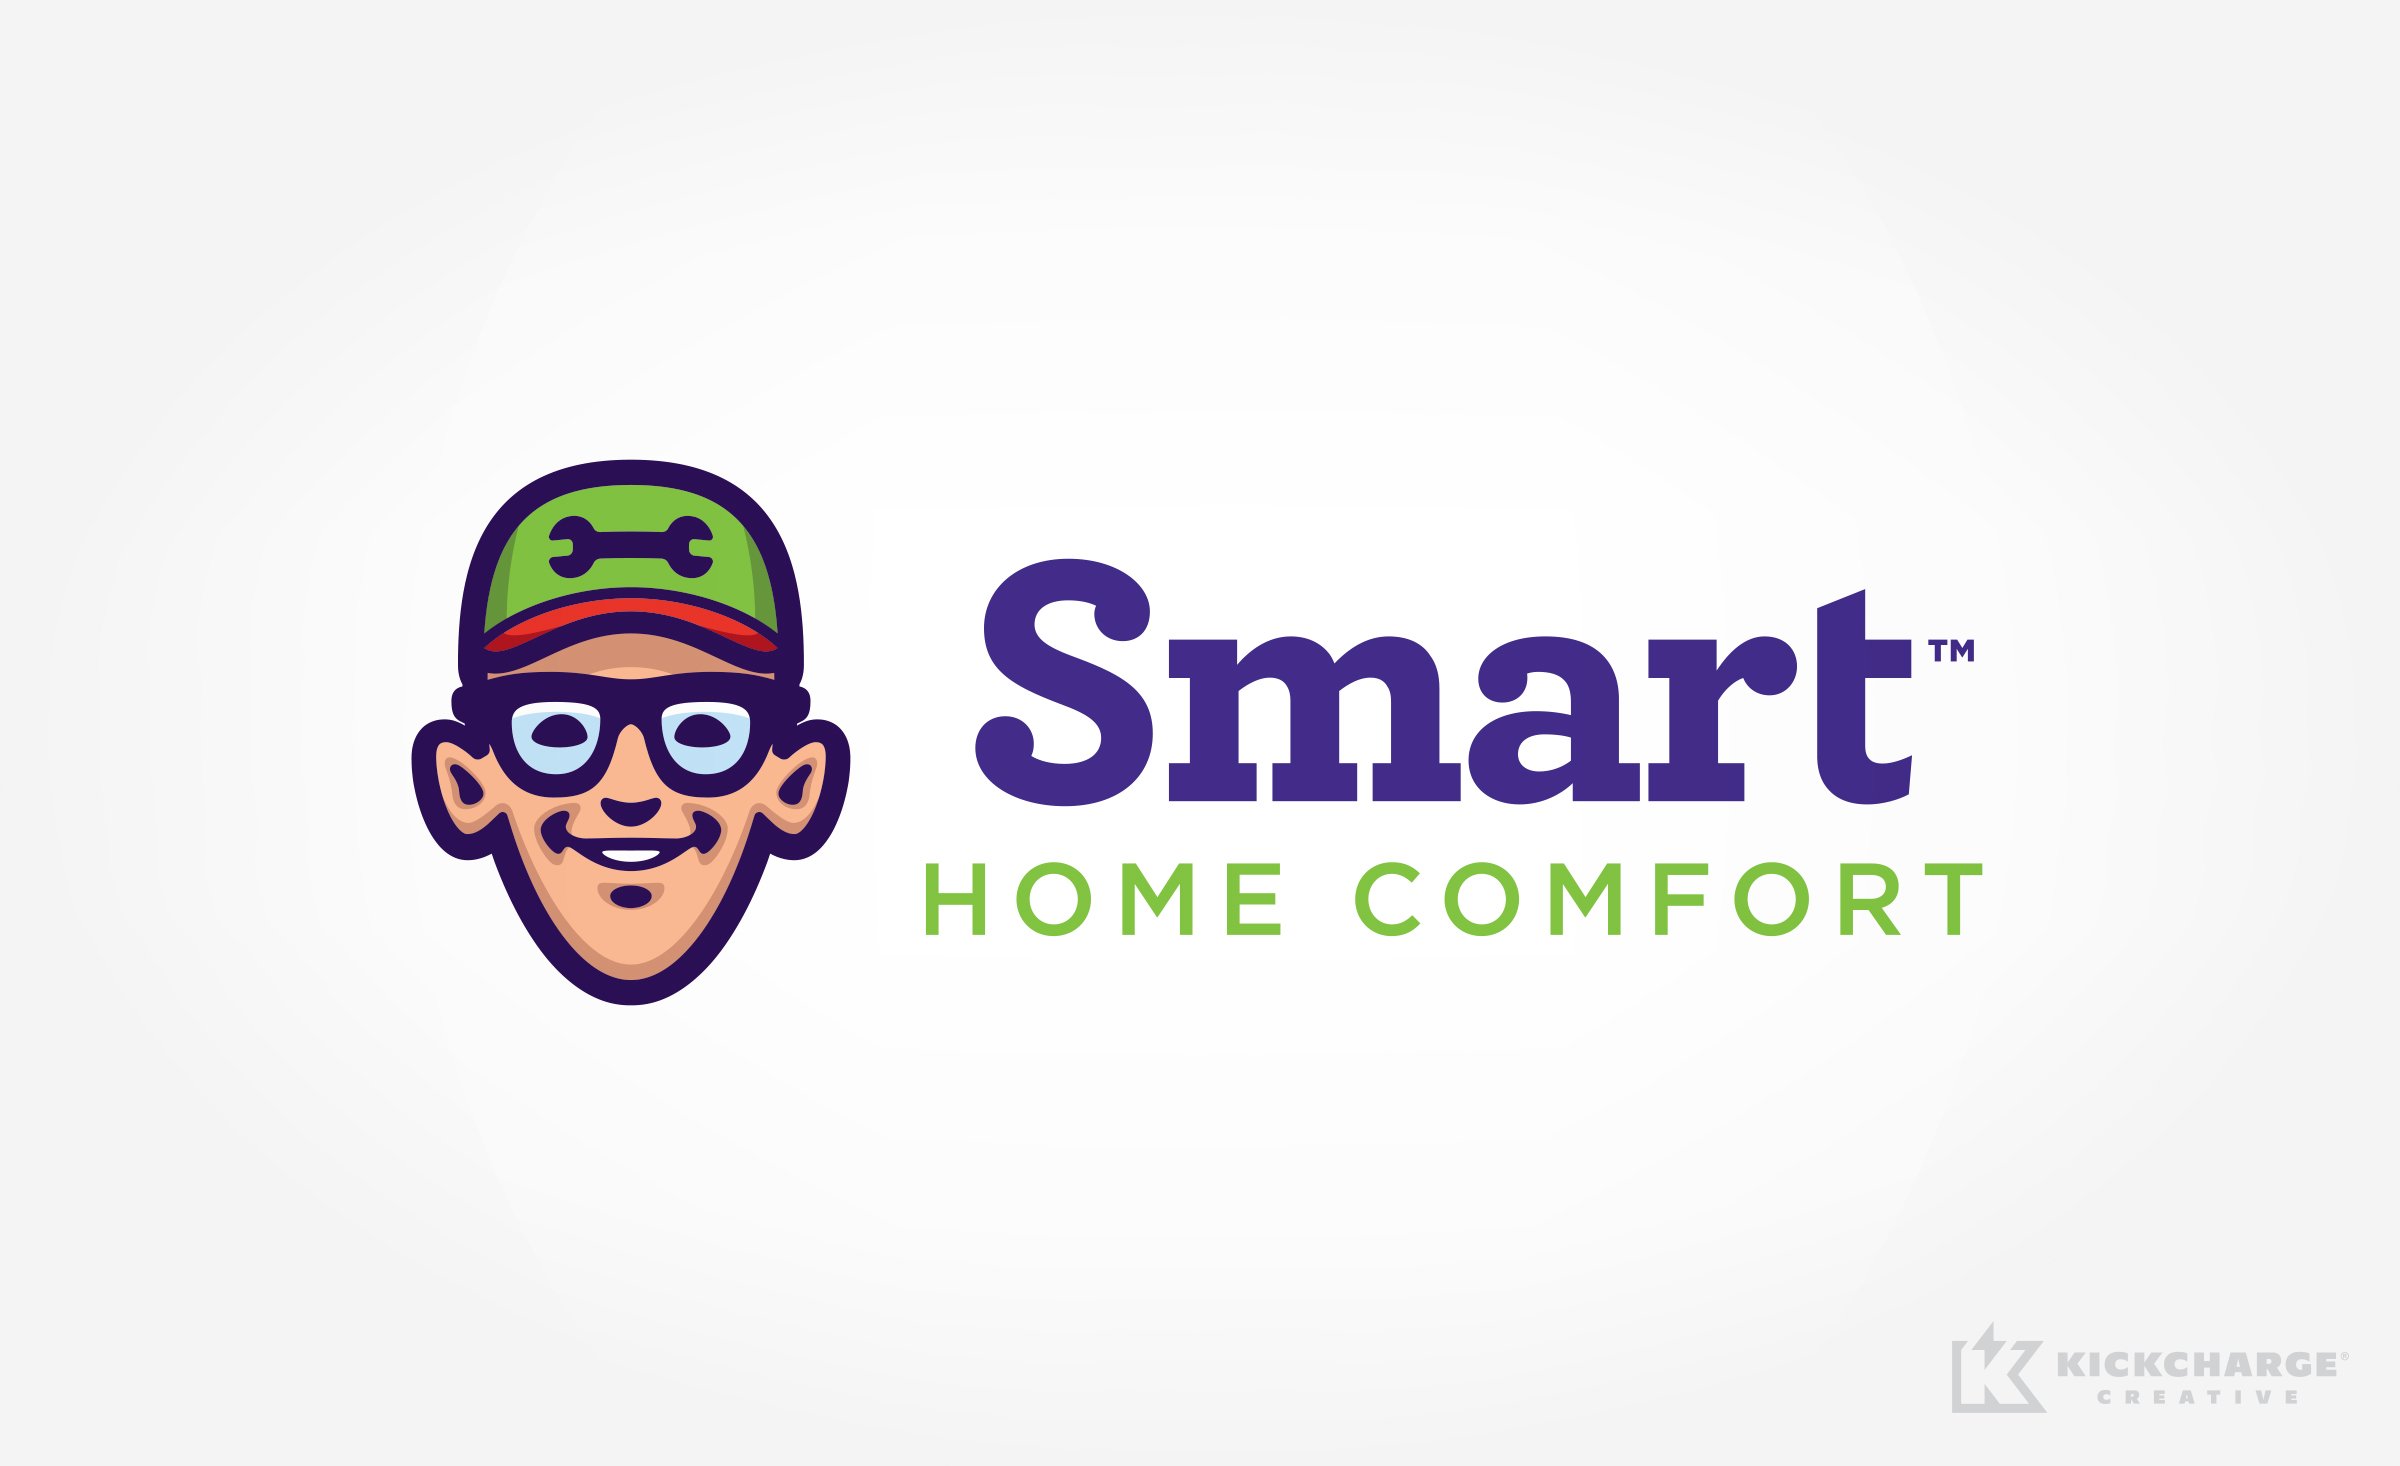 hvac logo for Smart Home Comfort